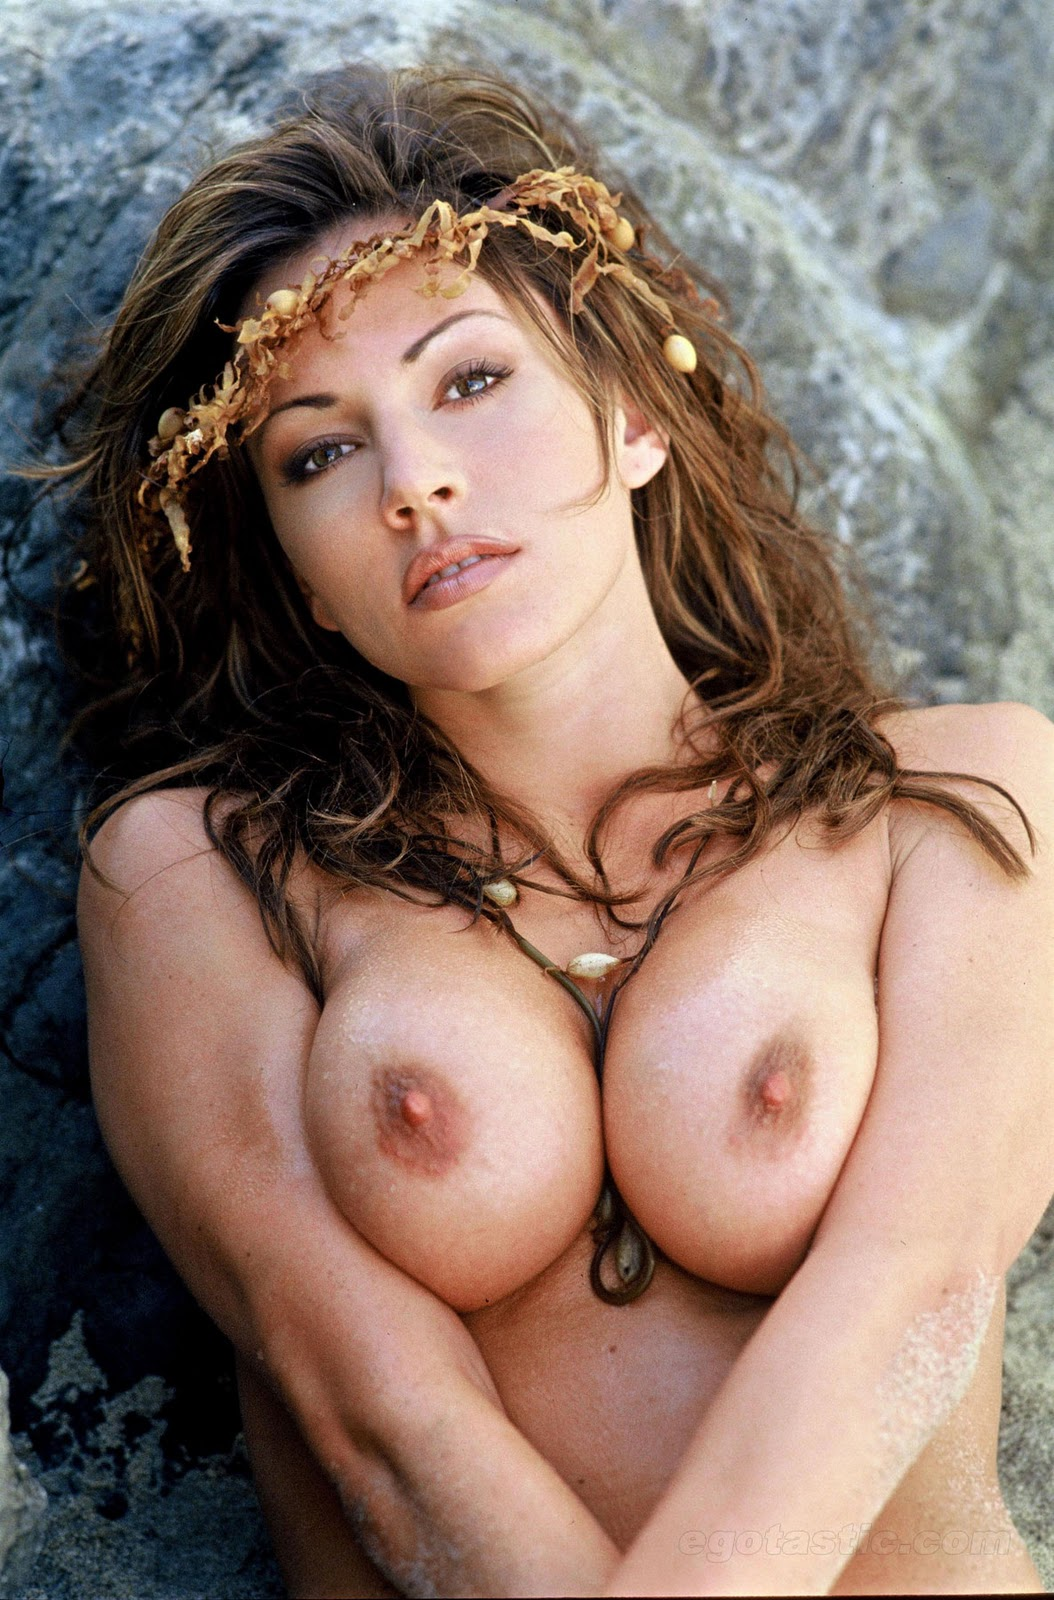 krista allen nude shoot 06 Sunday, April 4   If Nude is Good, More Nude is Better